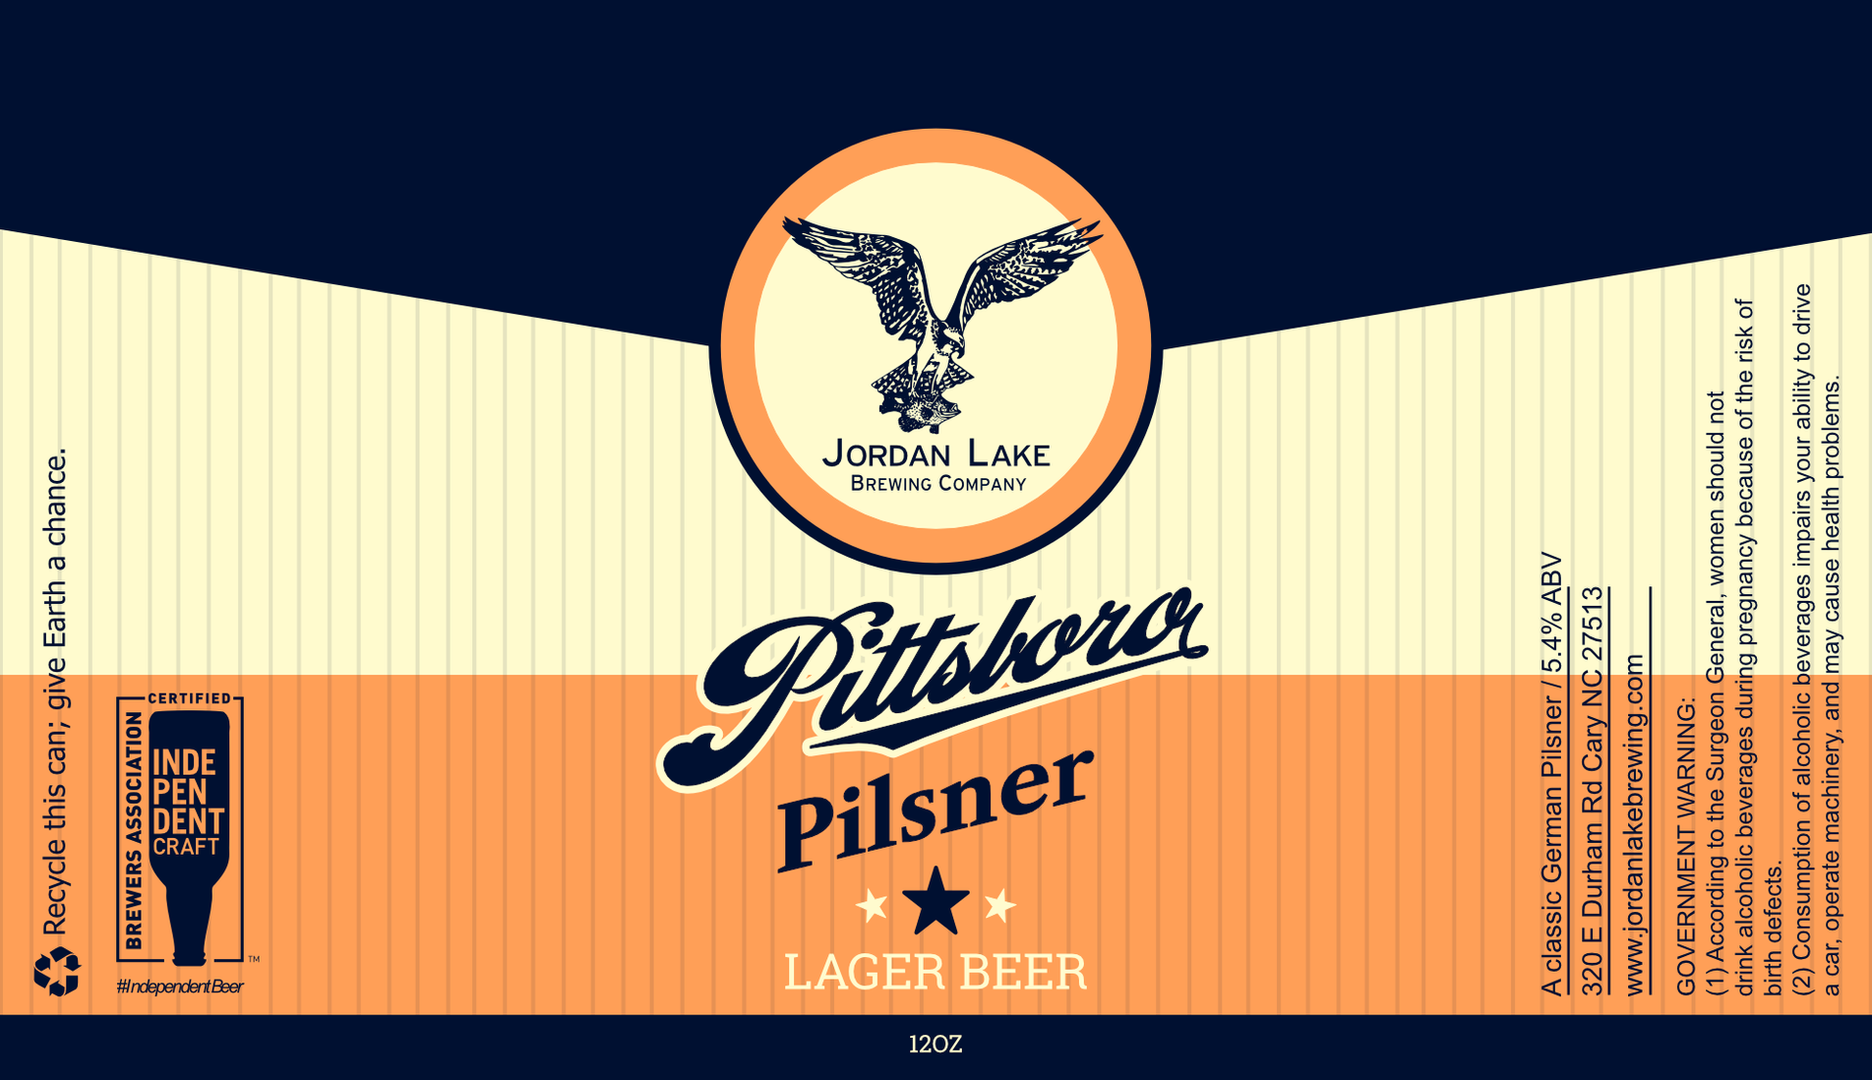 Pittsboro Pilsner - Jordan Lake Brewing Co.